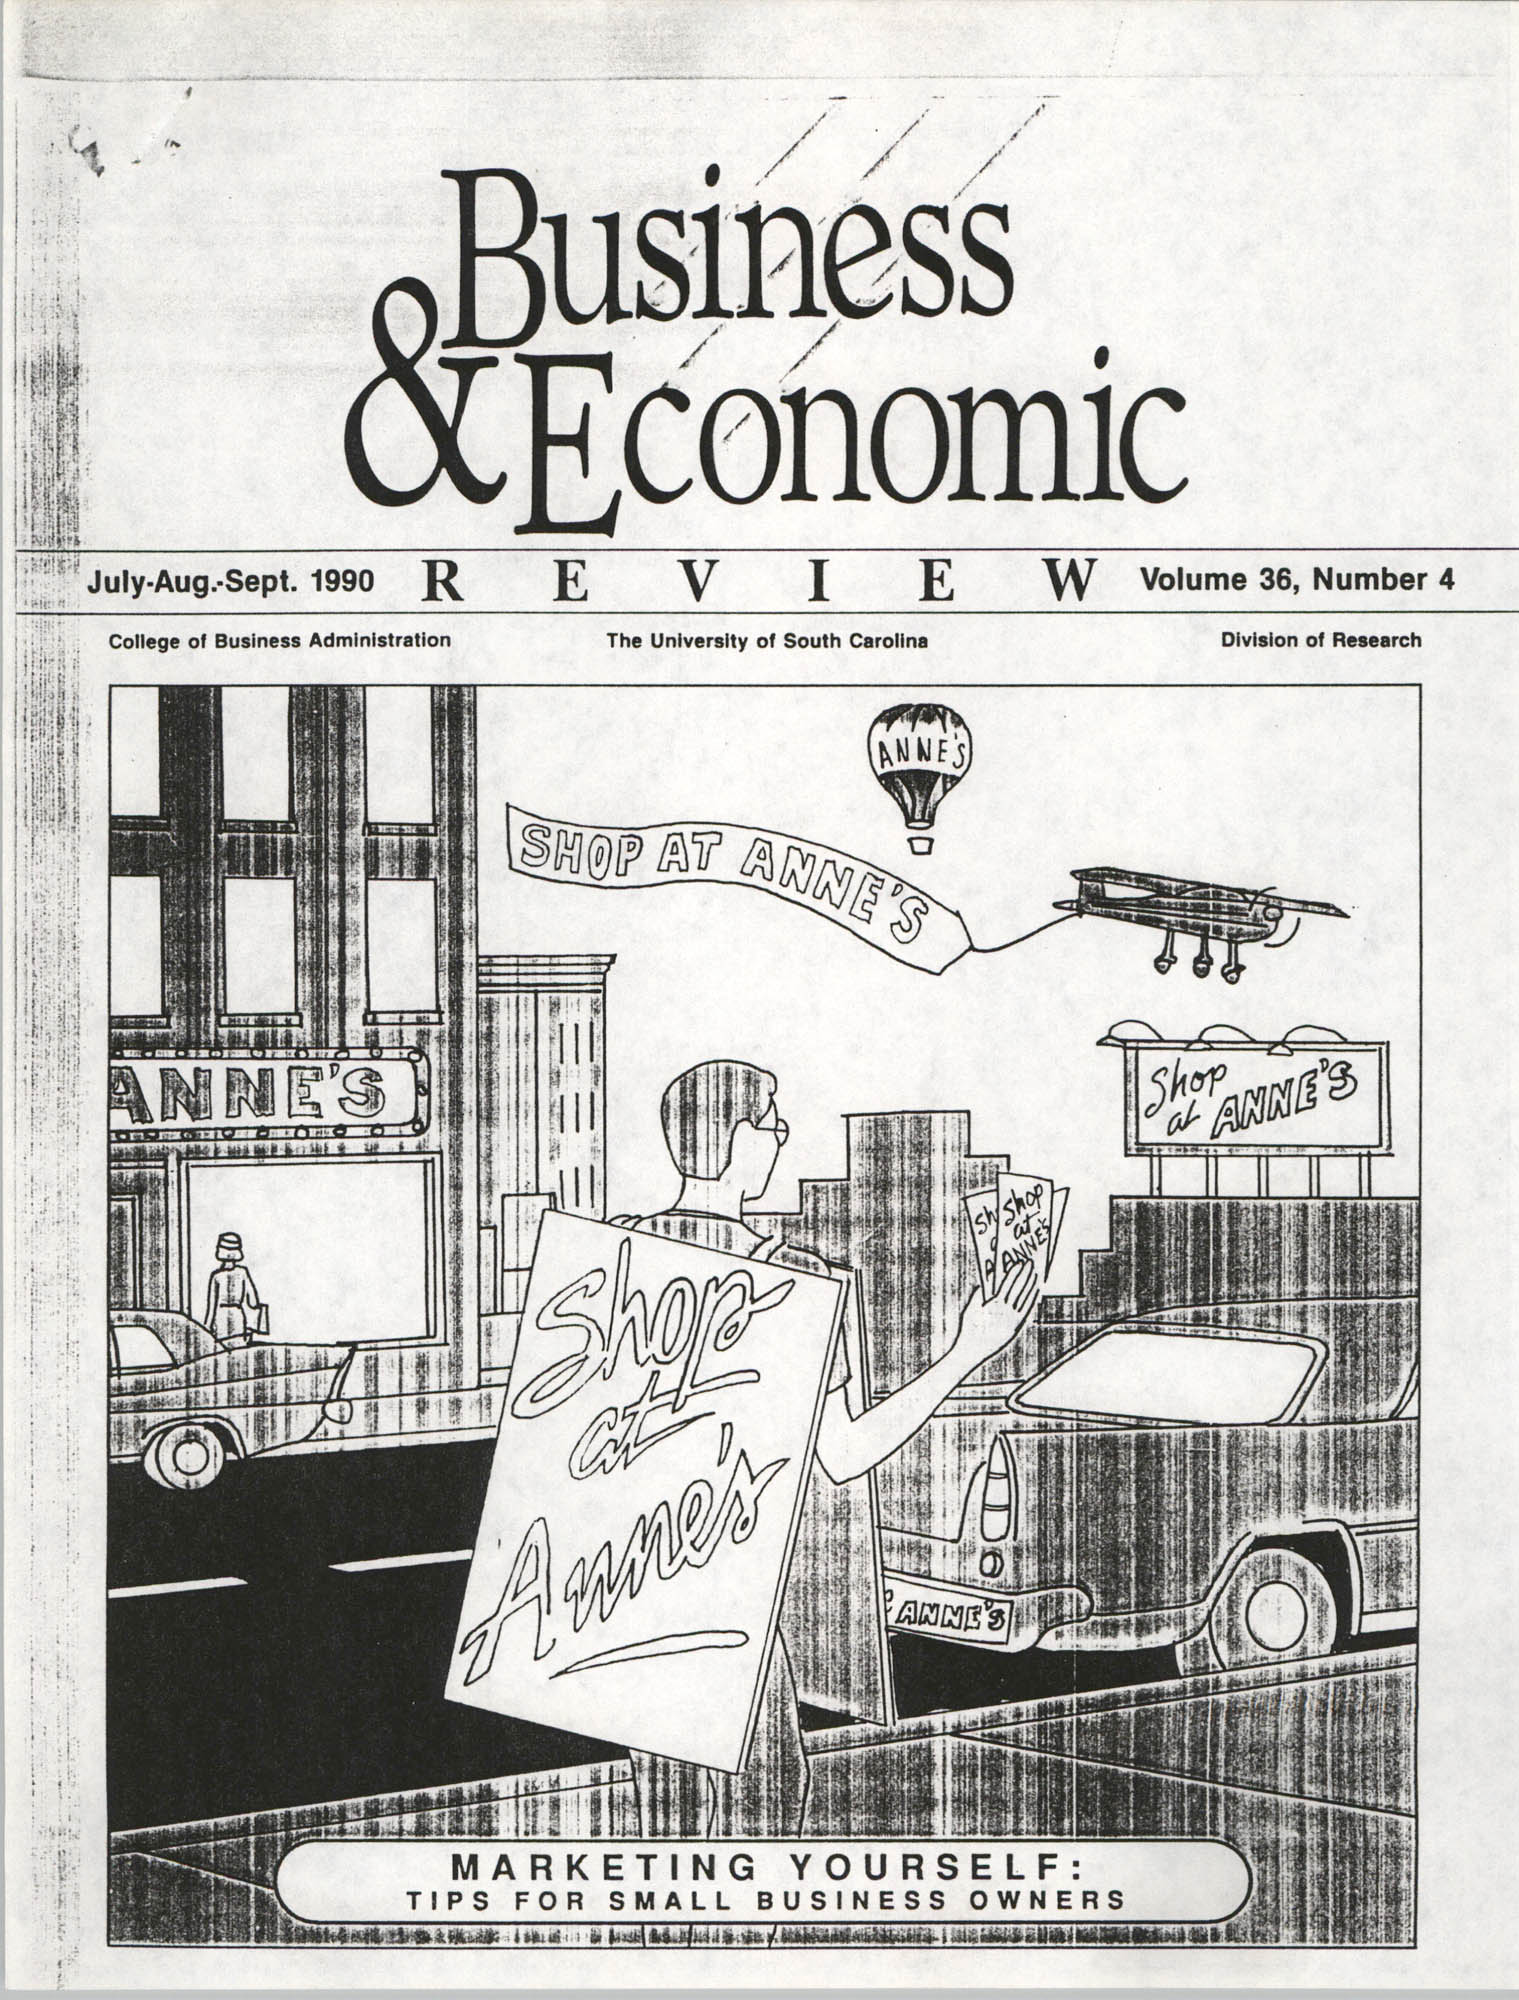 Handyman Network, Inc., Business and Economic, Volume 36, Number 4, July-Sept. 1990, Cover